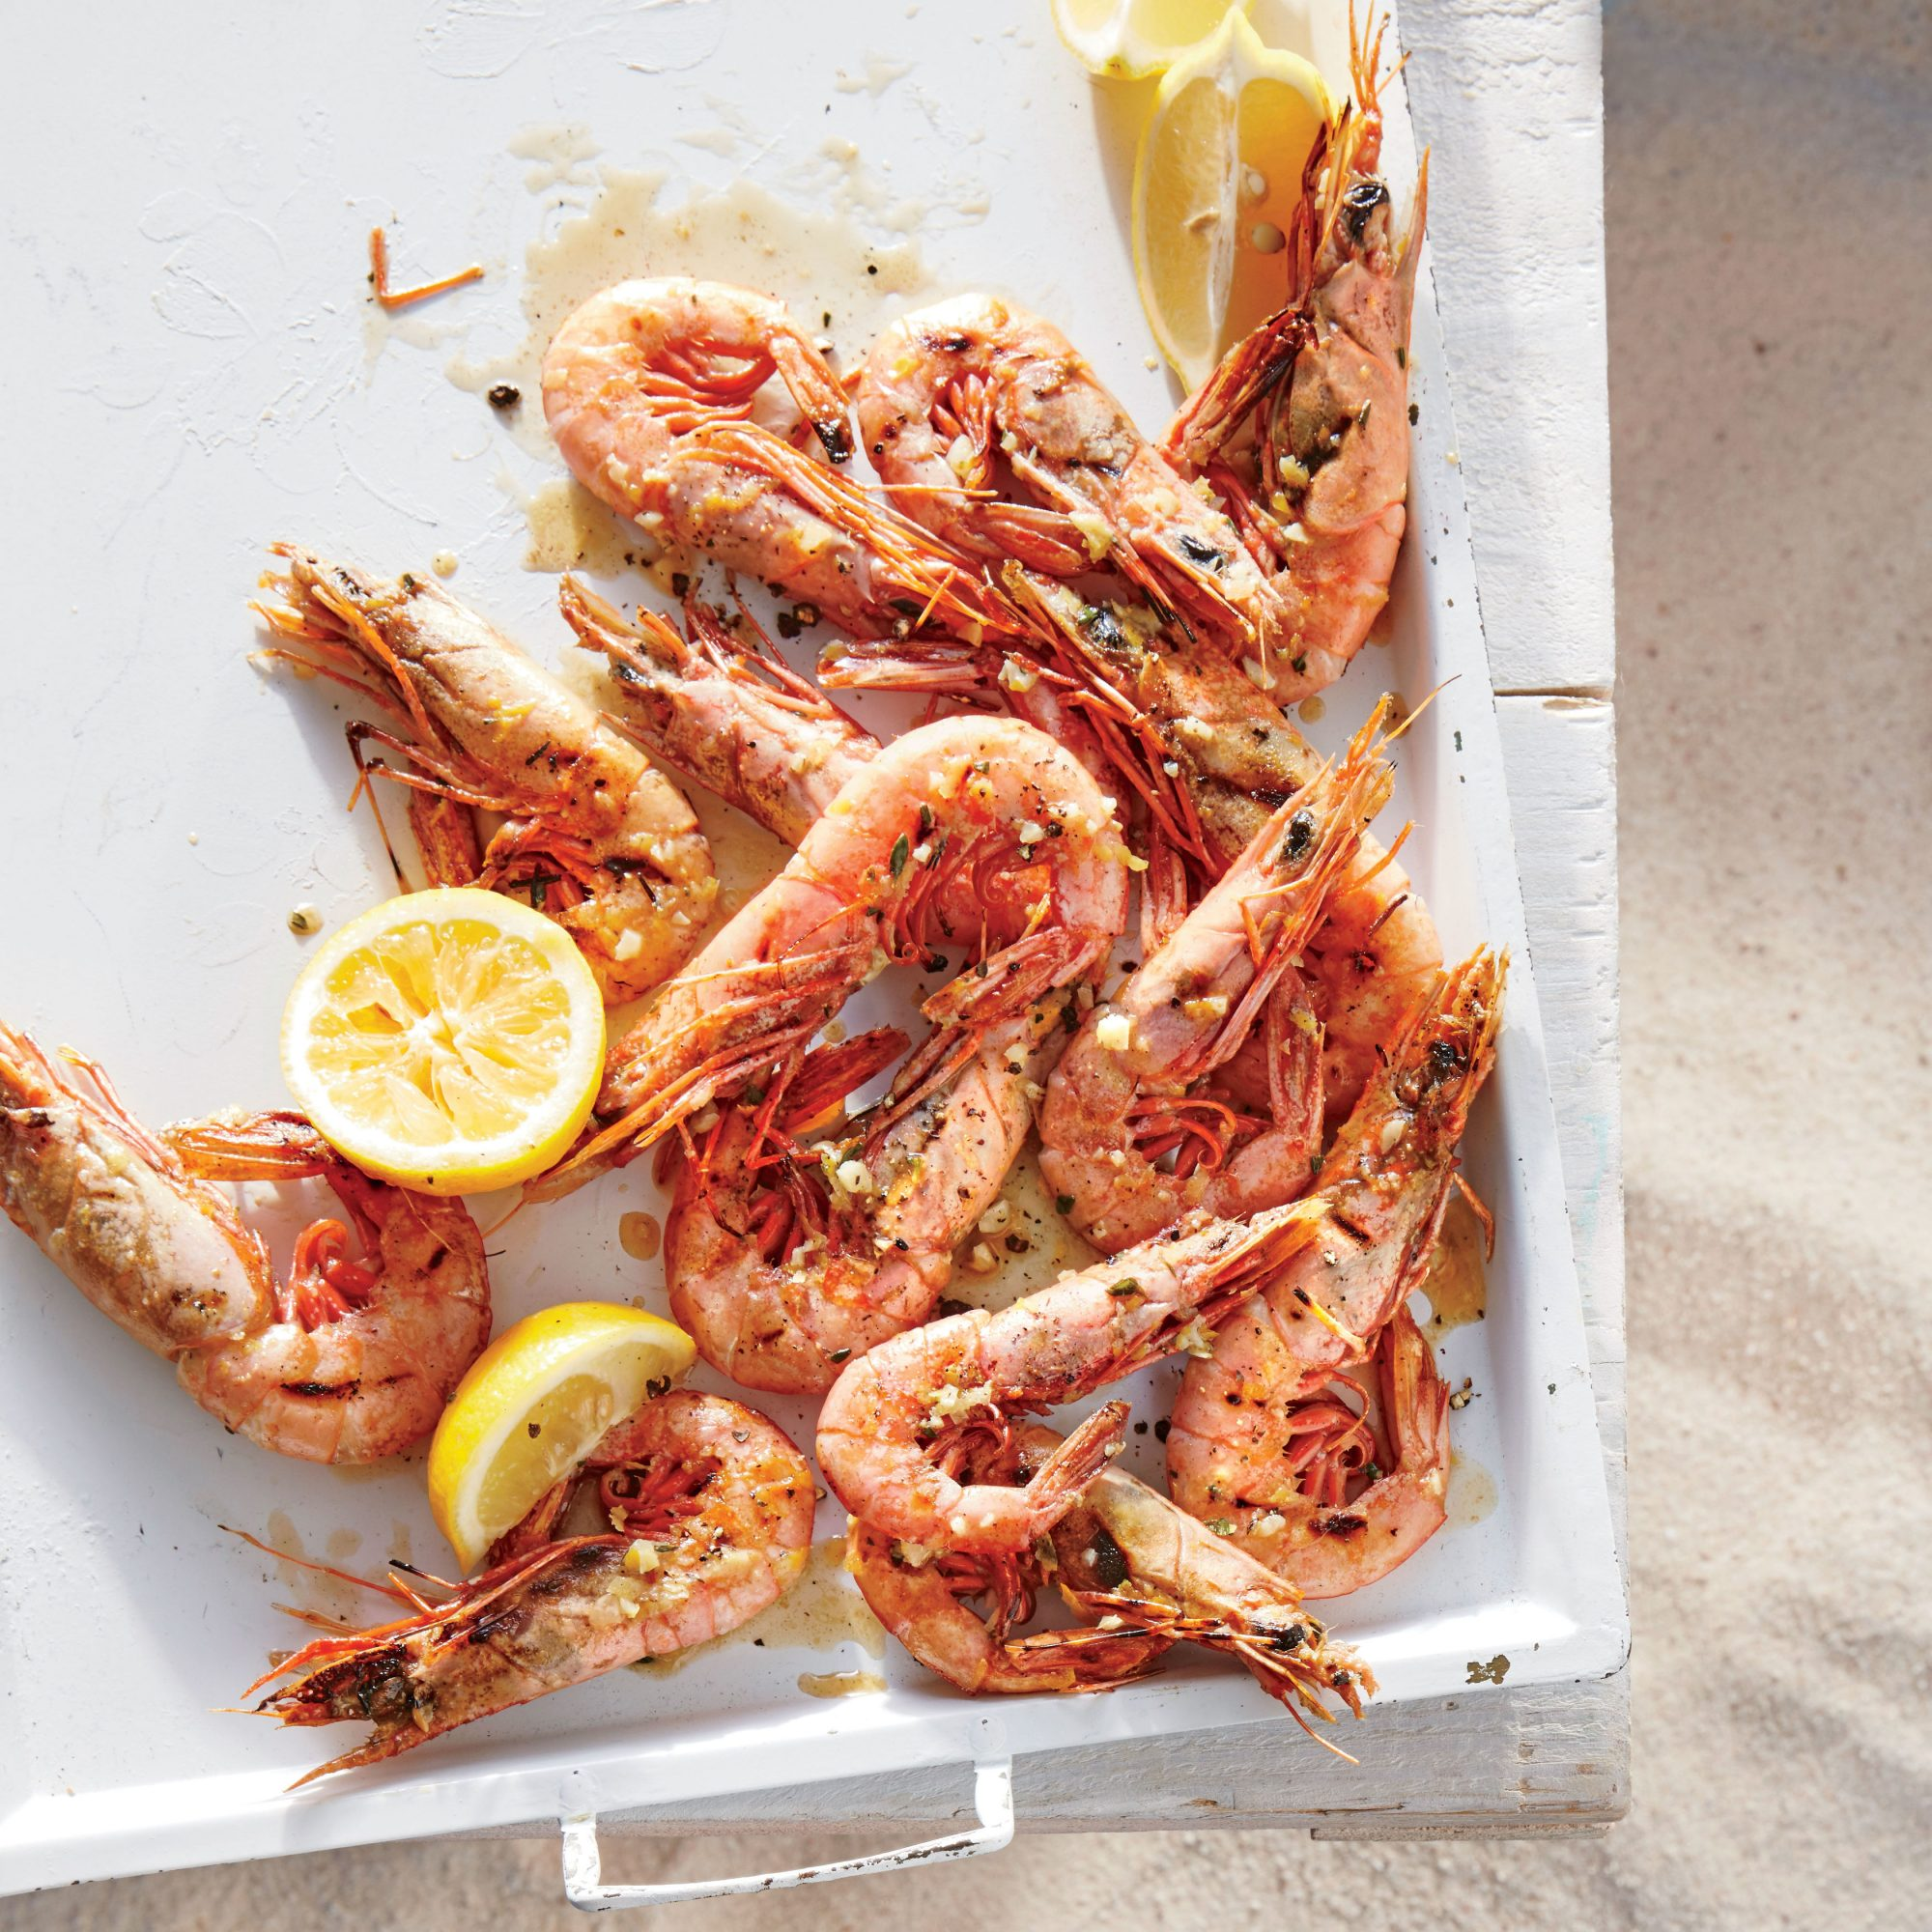 You've Probably Never Heard of This Delicious Shrimp (It Tastes Like Lobster)